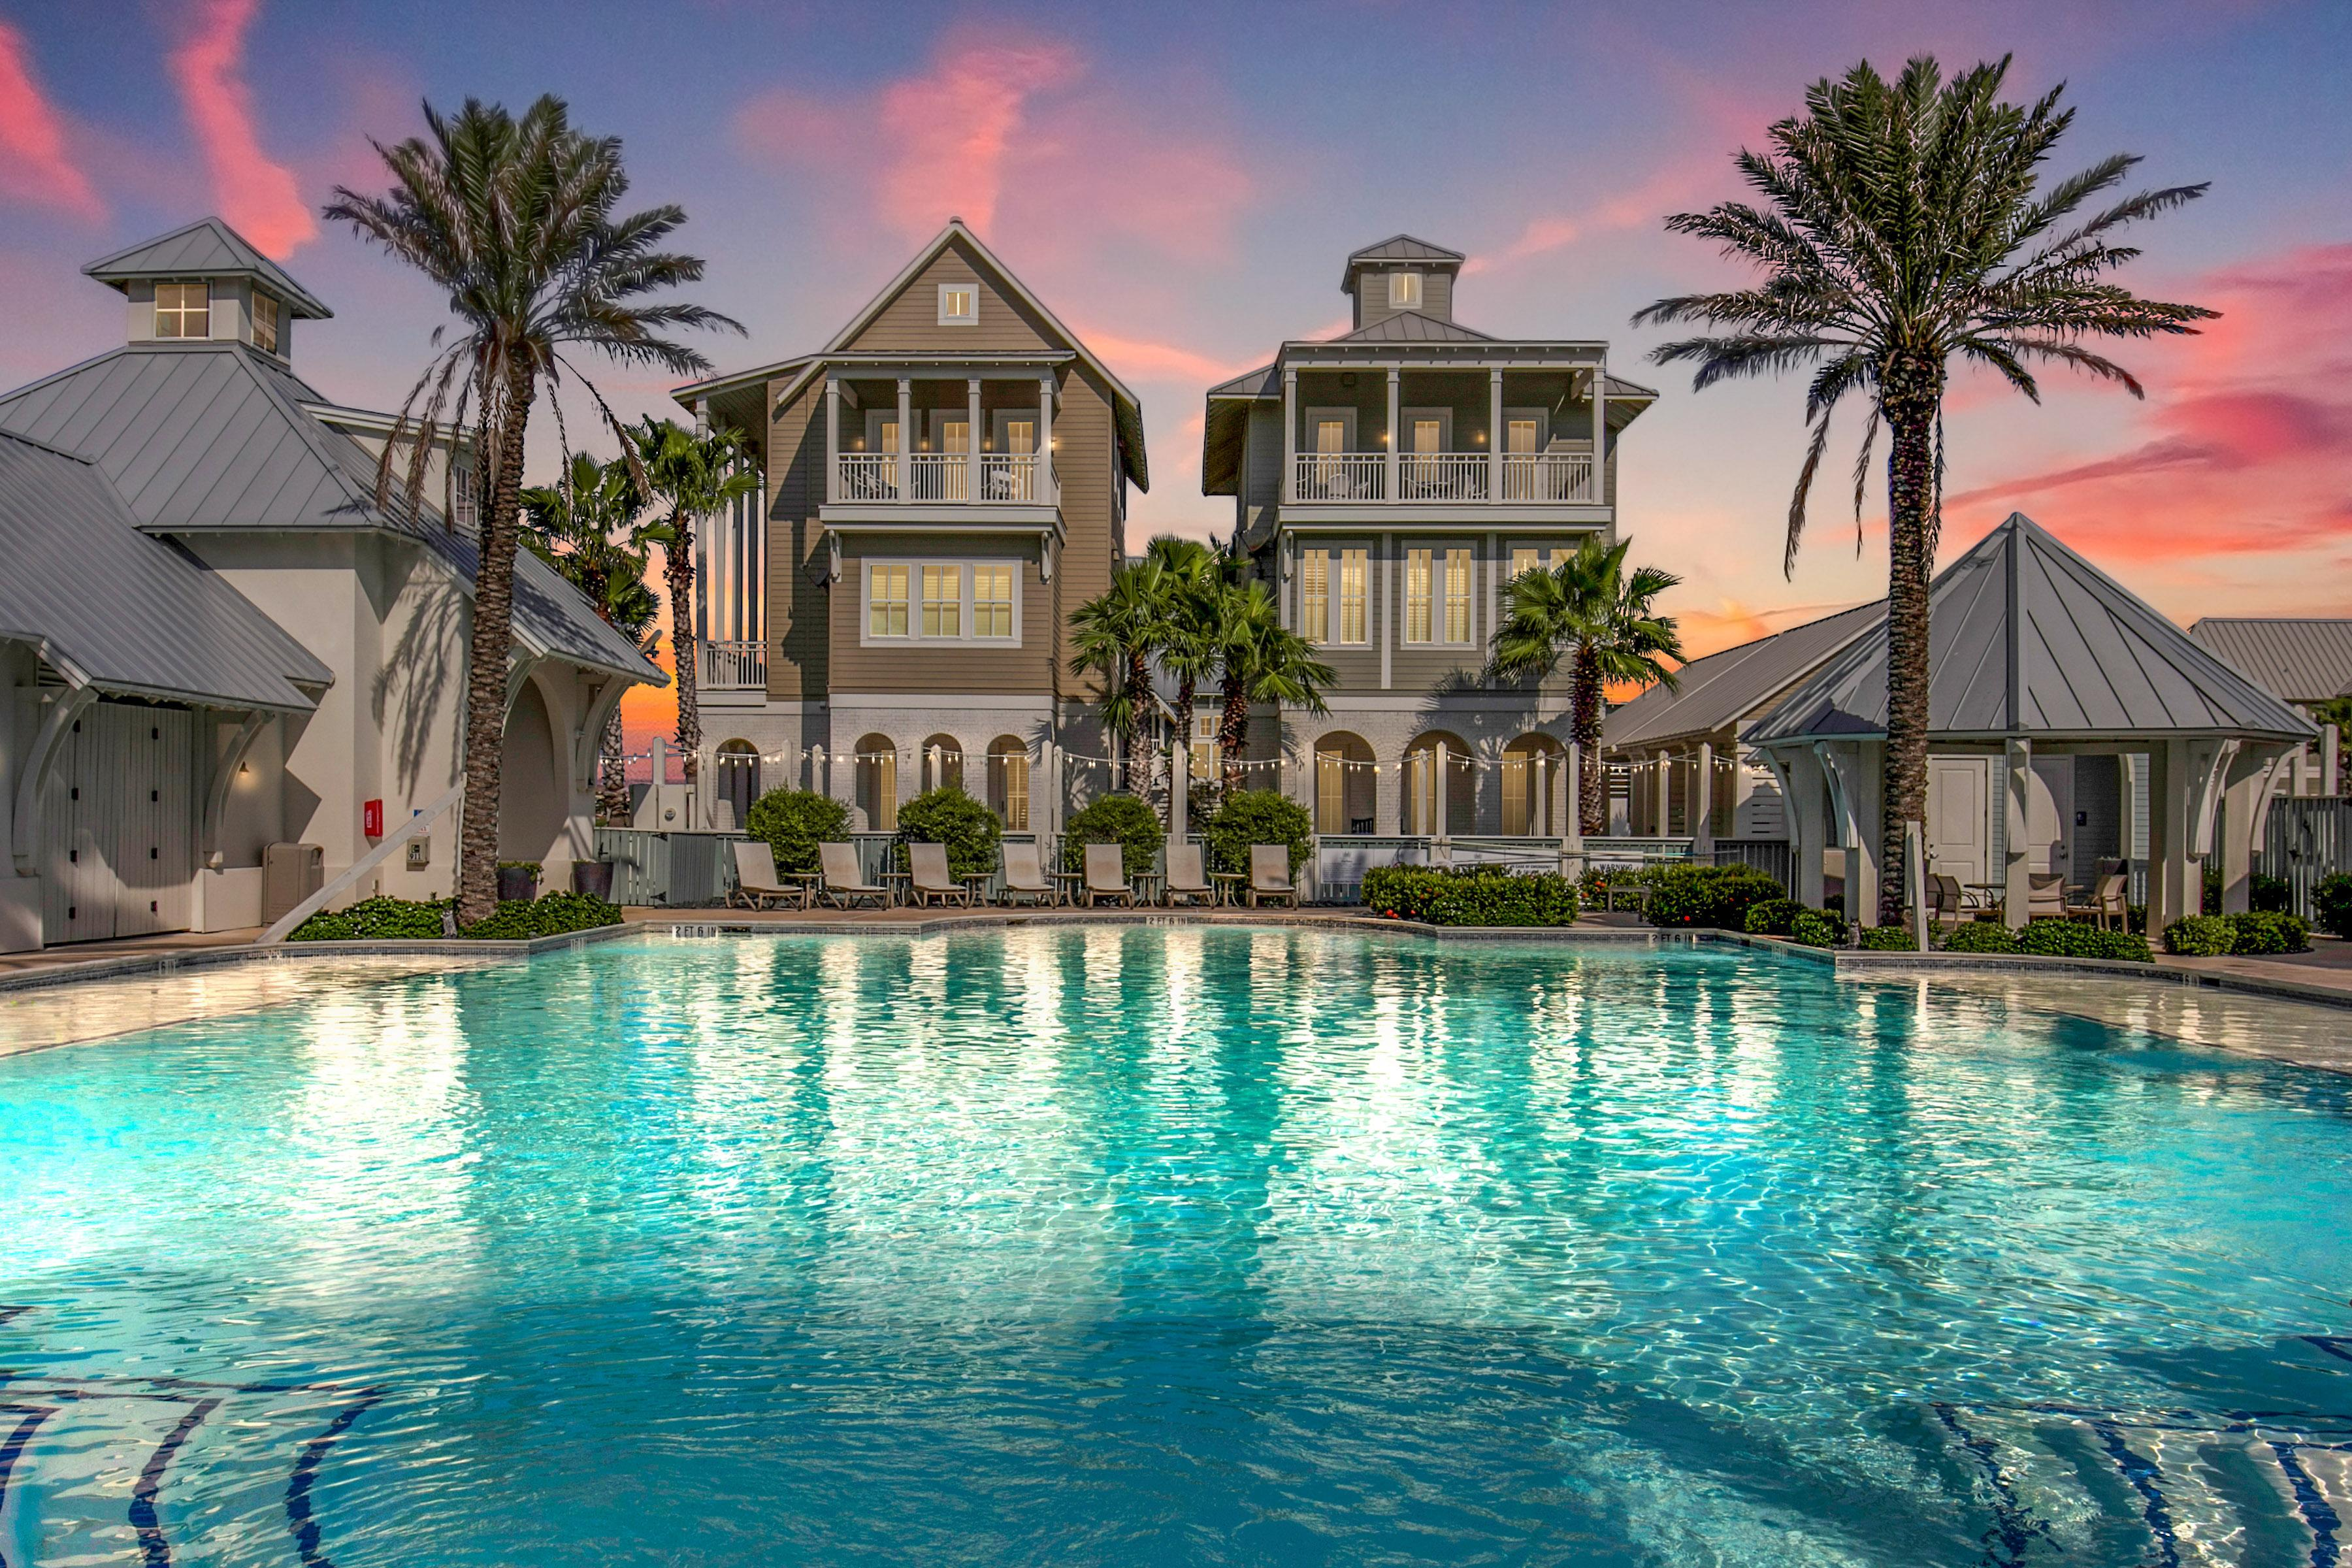 This Port Aransas poolside luxury home is part of the Palmilla Resort, and the amenities are fantastic!